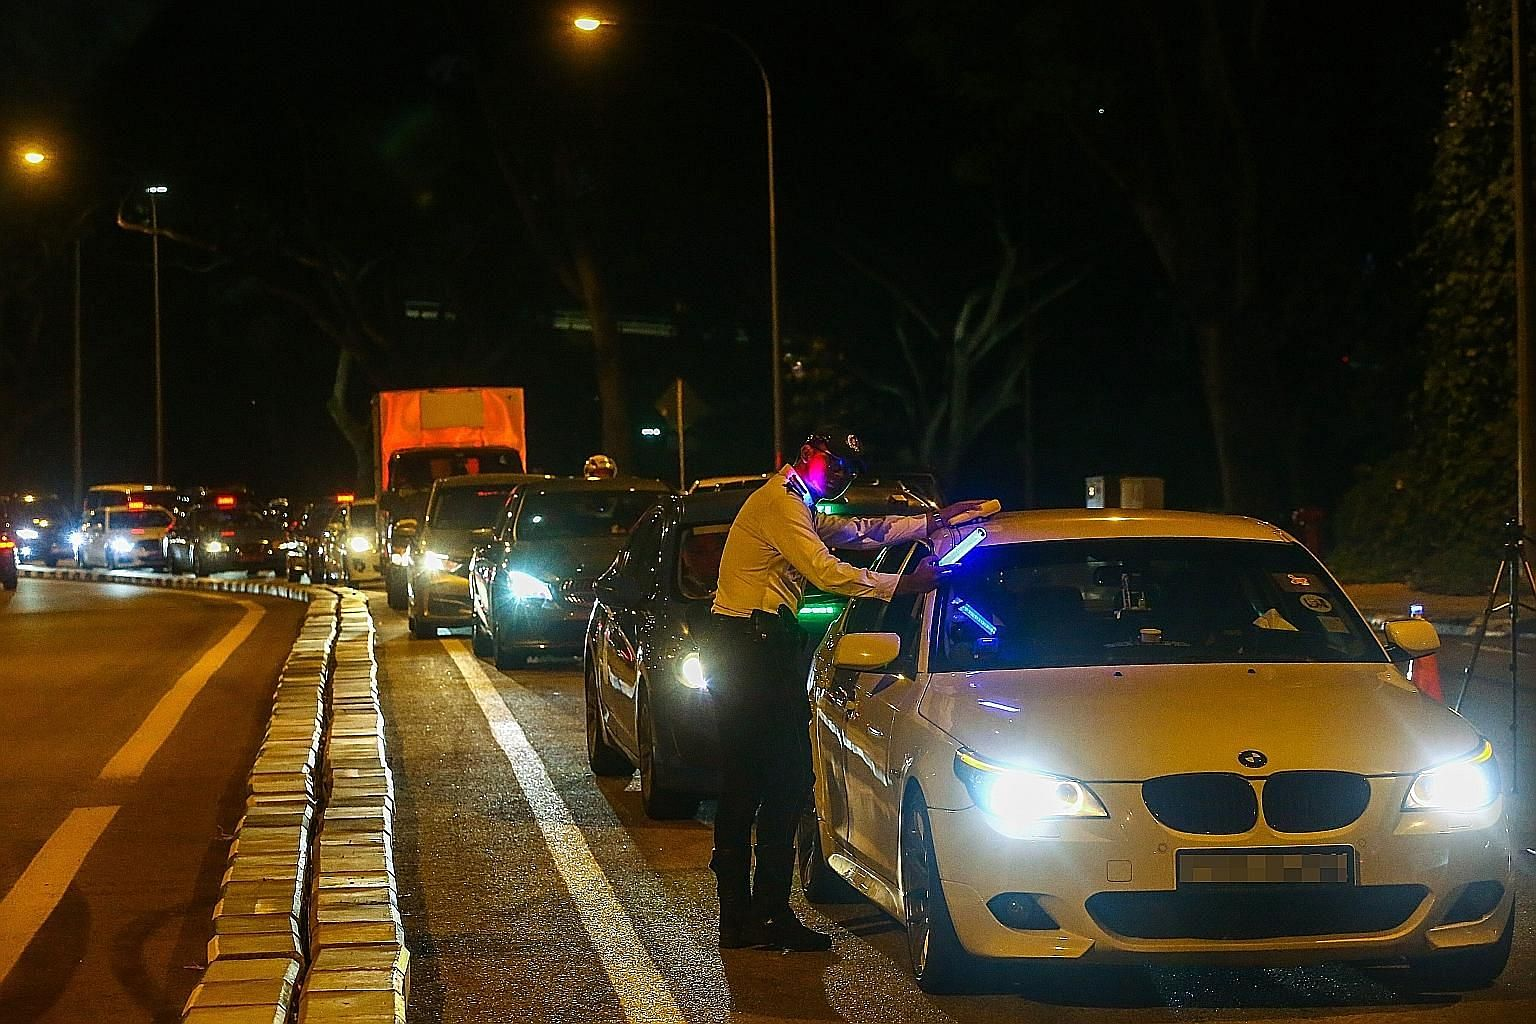 The number of offenders caught for drink driving fell from 1,568 in the January to September period last year to 1,486 this year. PHOTO: LIANHE ZAOBAO FILE